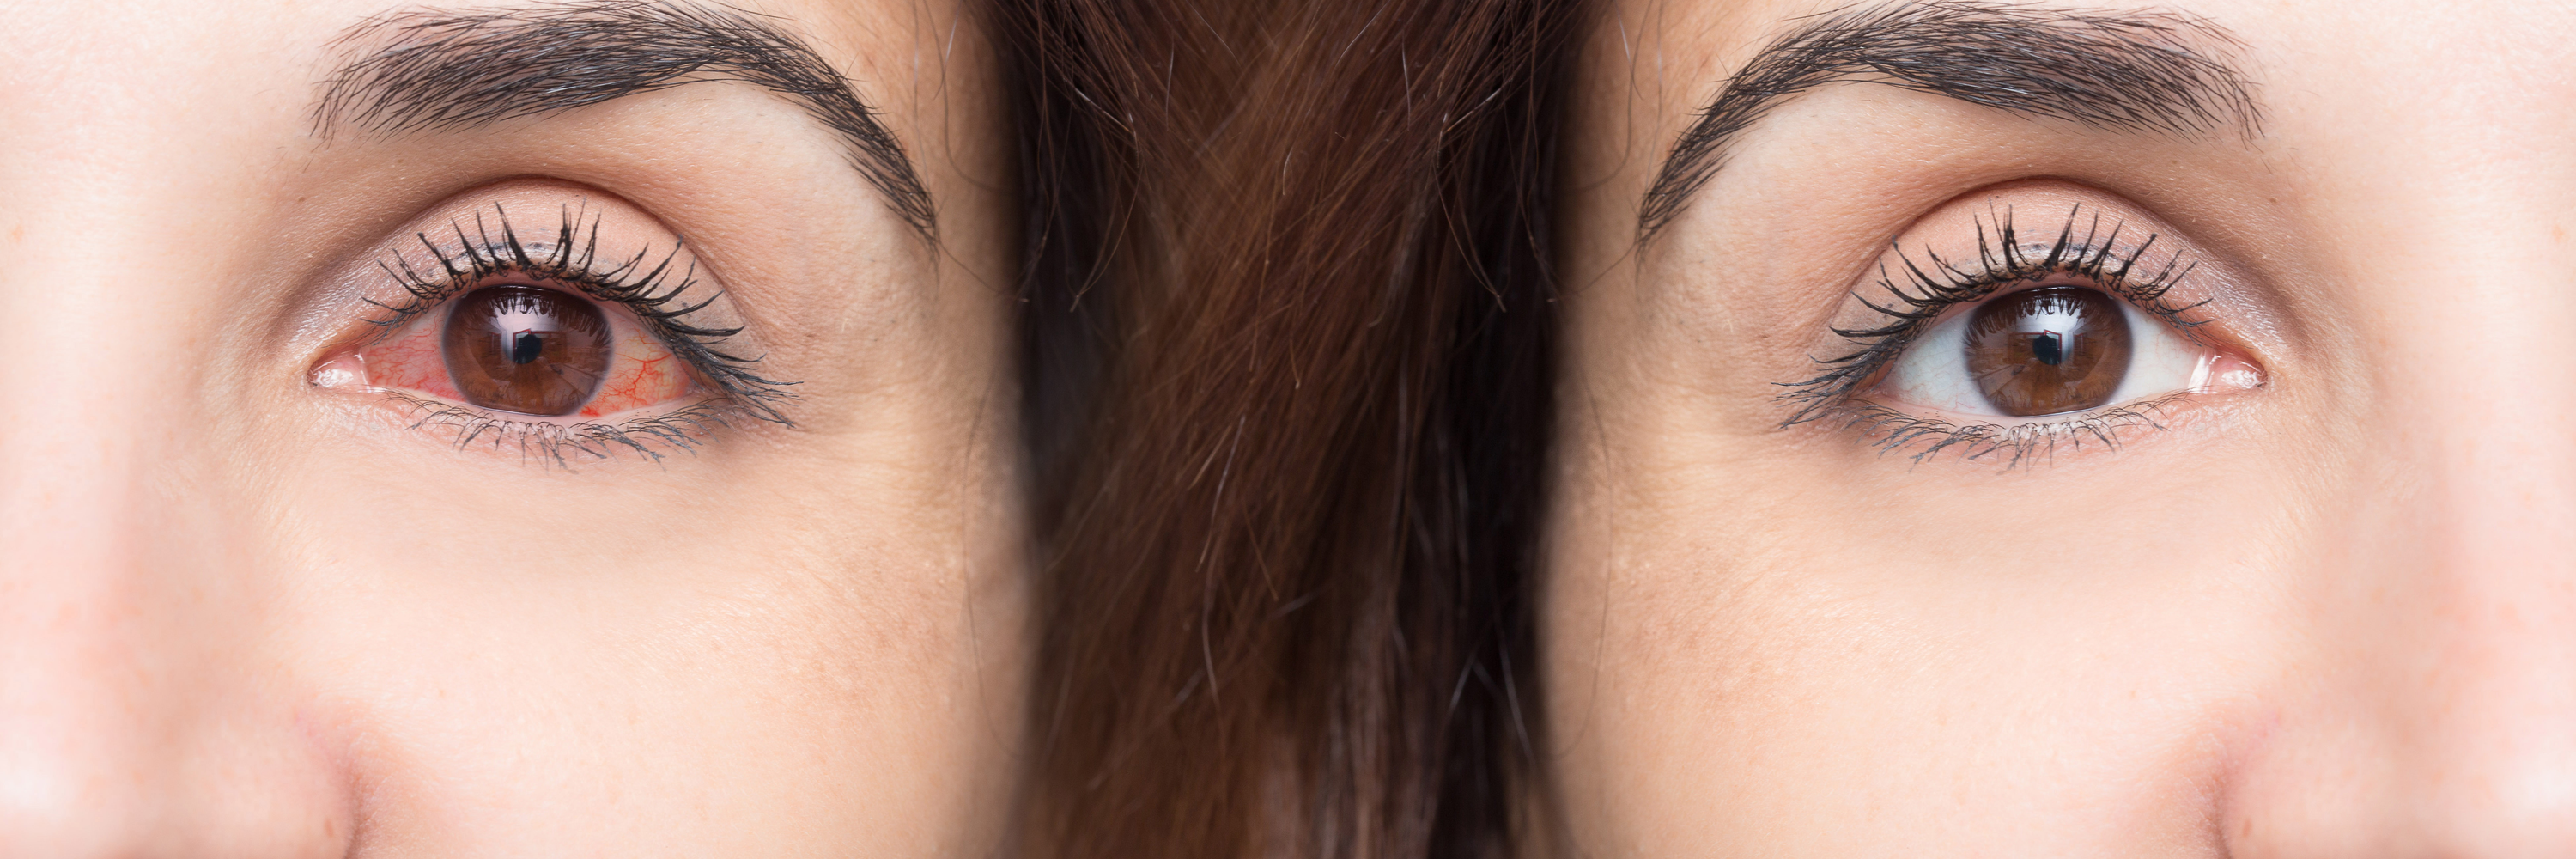 What Are the Benefits of Treating Dry Eye With LipiFlow?